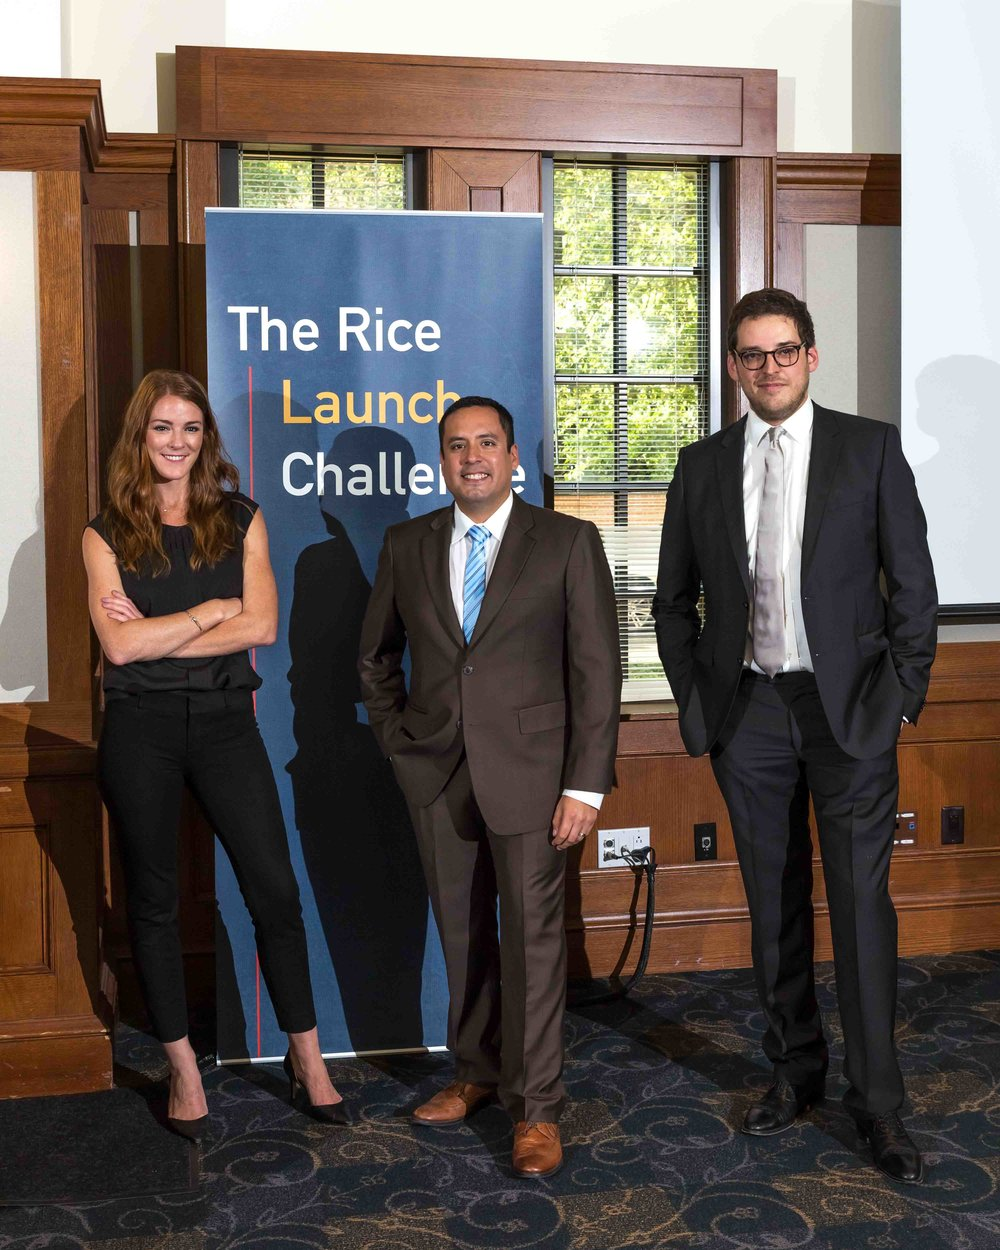 Rice University - Launch Challenge 29Mar2017-7Rice University - Launch Challenge 29Mar2017.JPG